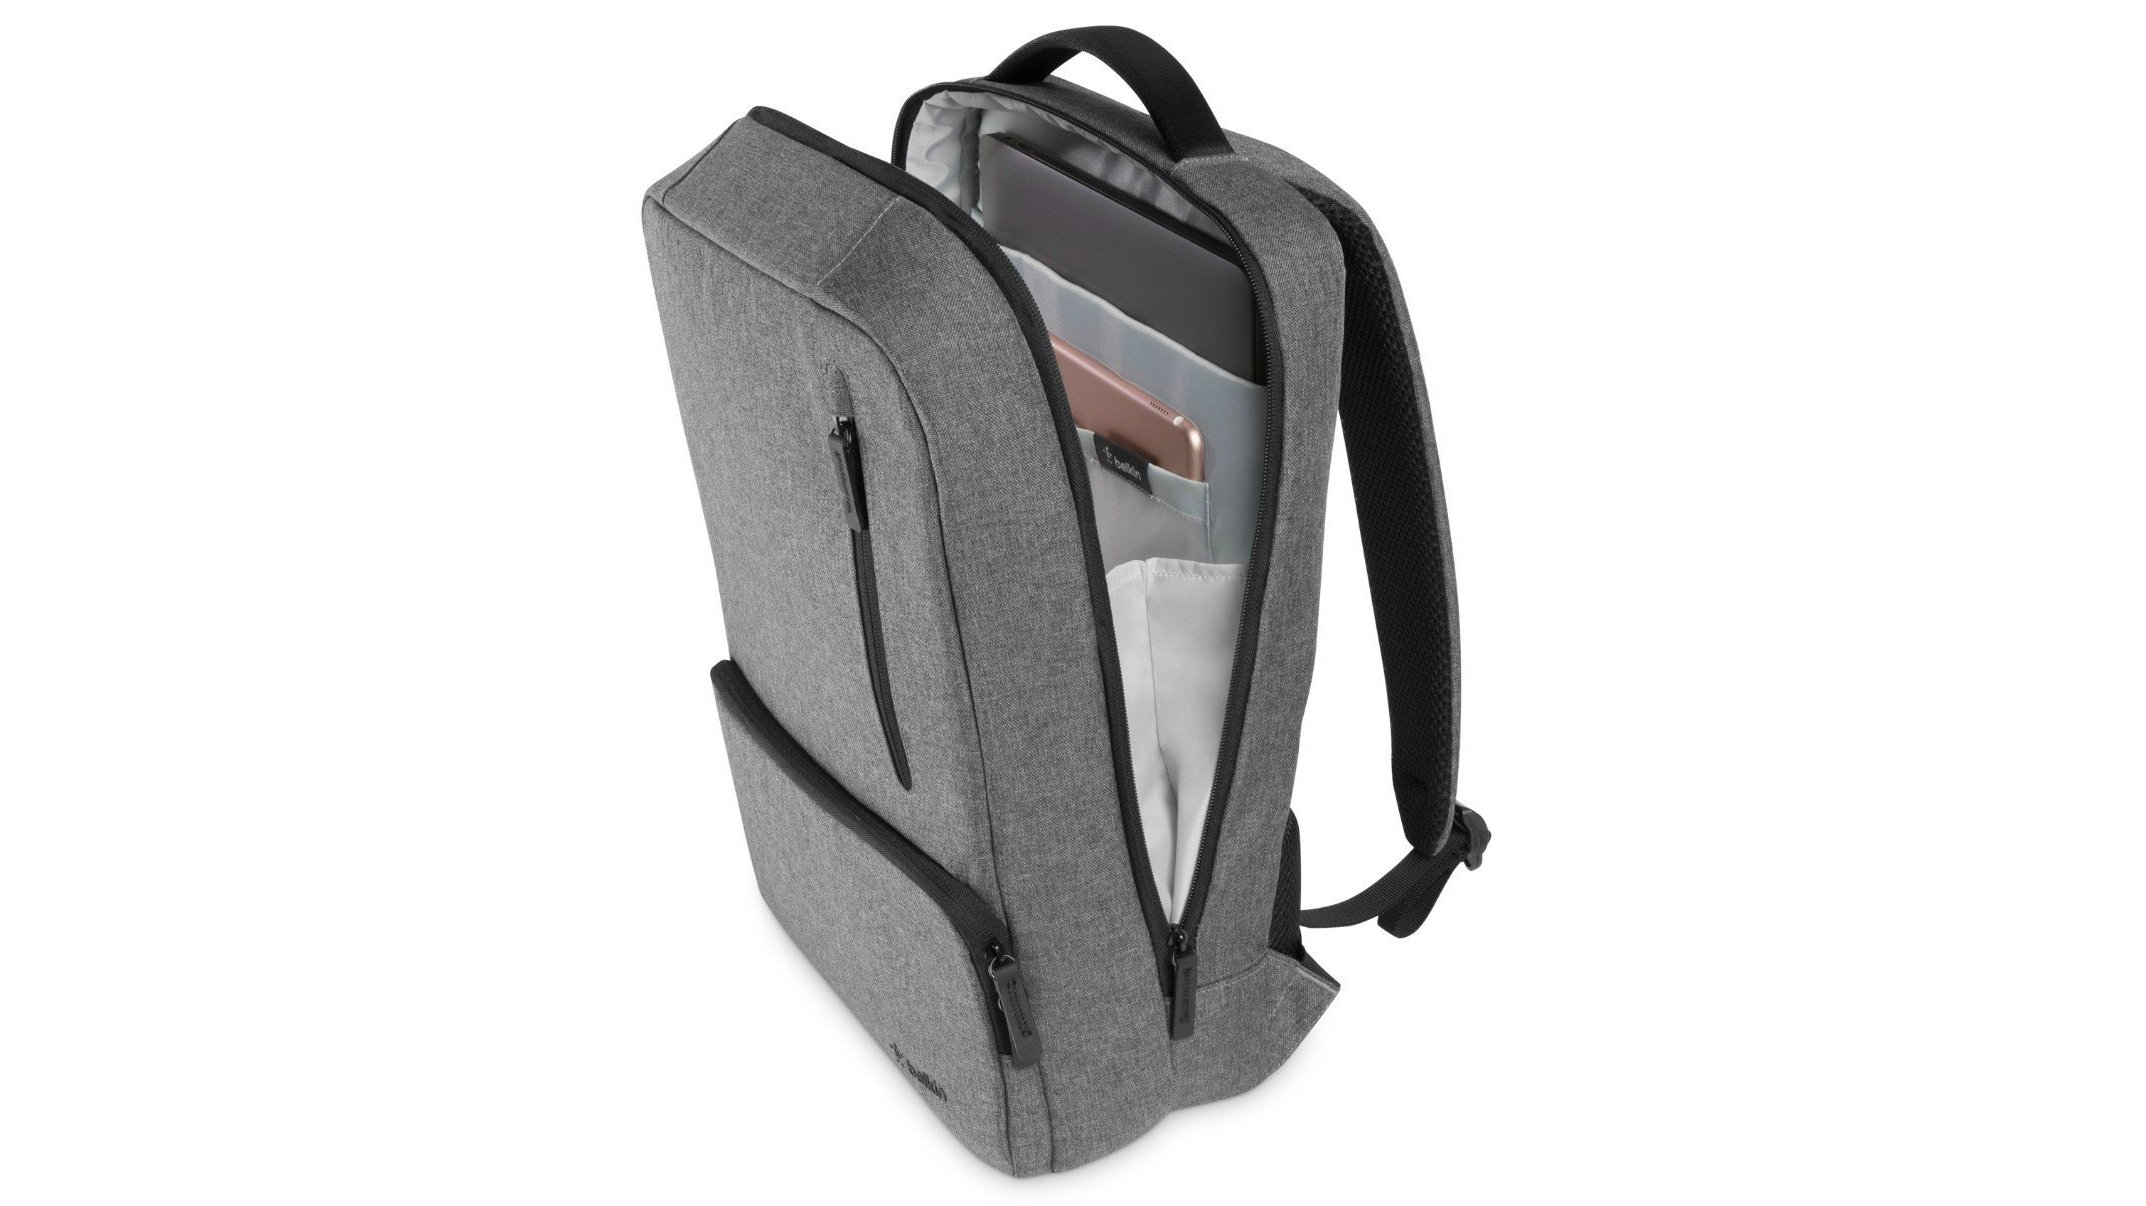 9c3154d38e Best laptop bag 2018  The best laptop backpacks